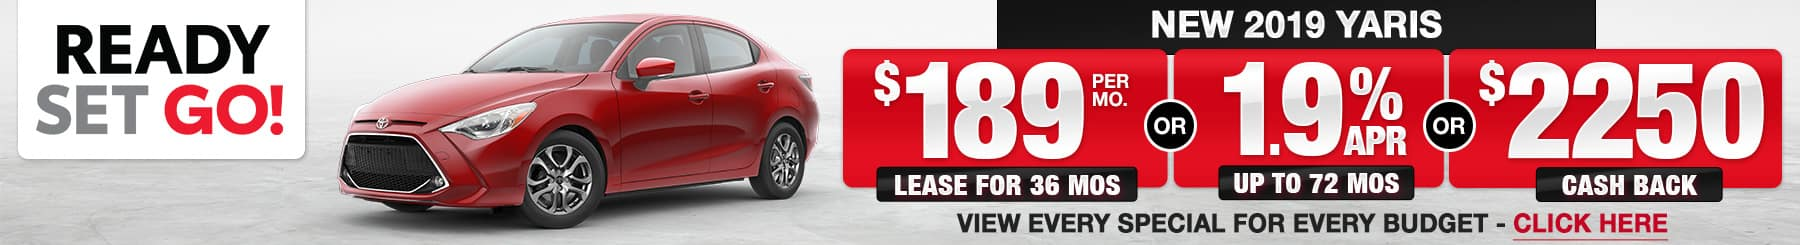 Toyota Yaris Lease Finance Specials